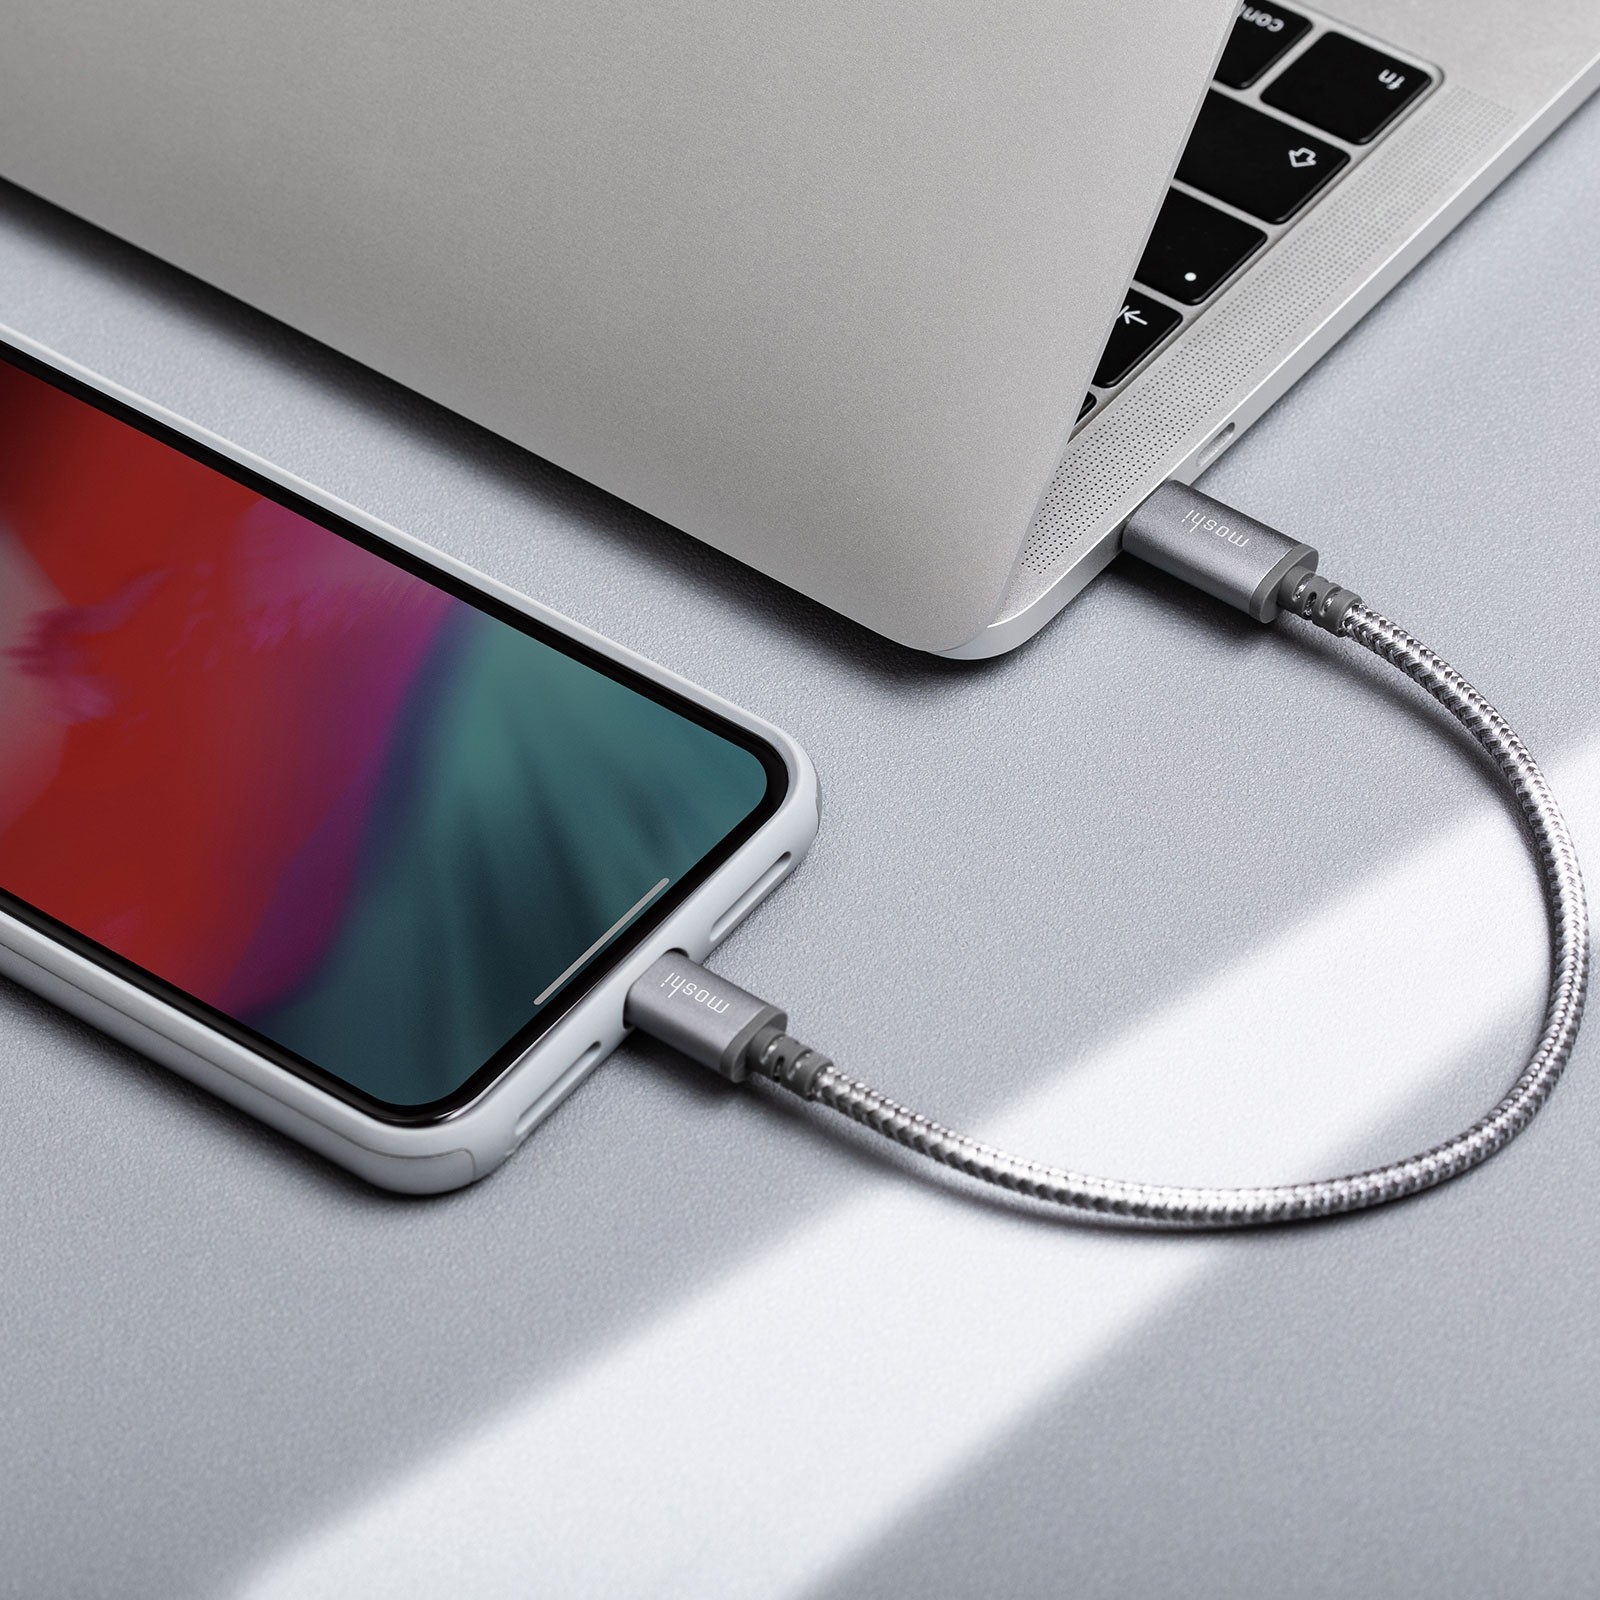 Moshi Integra USB-C Charge/Sync Cable with Lightning Connector (1.2 m) - Grey, 99MO084041